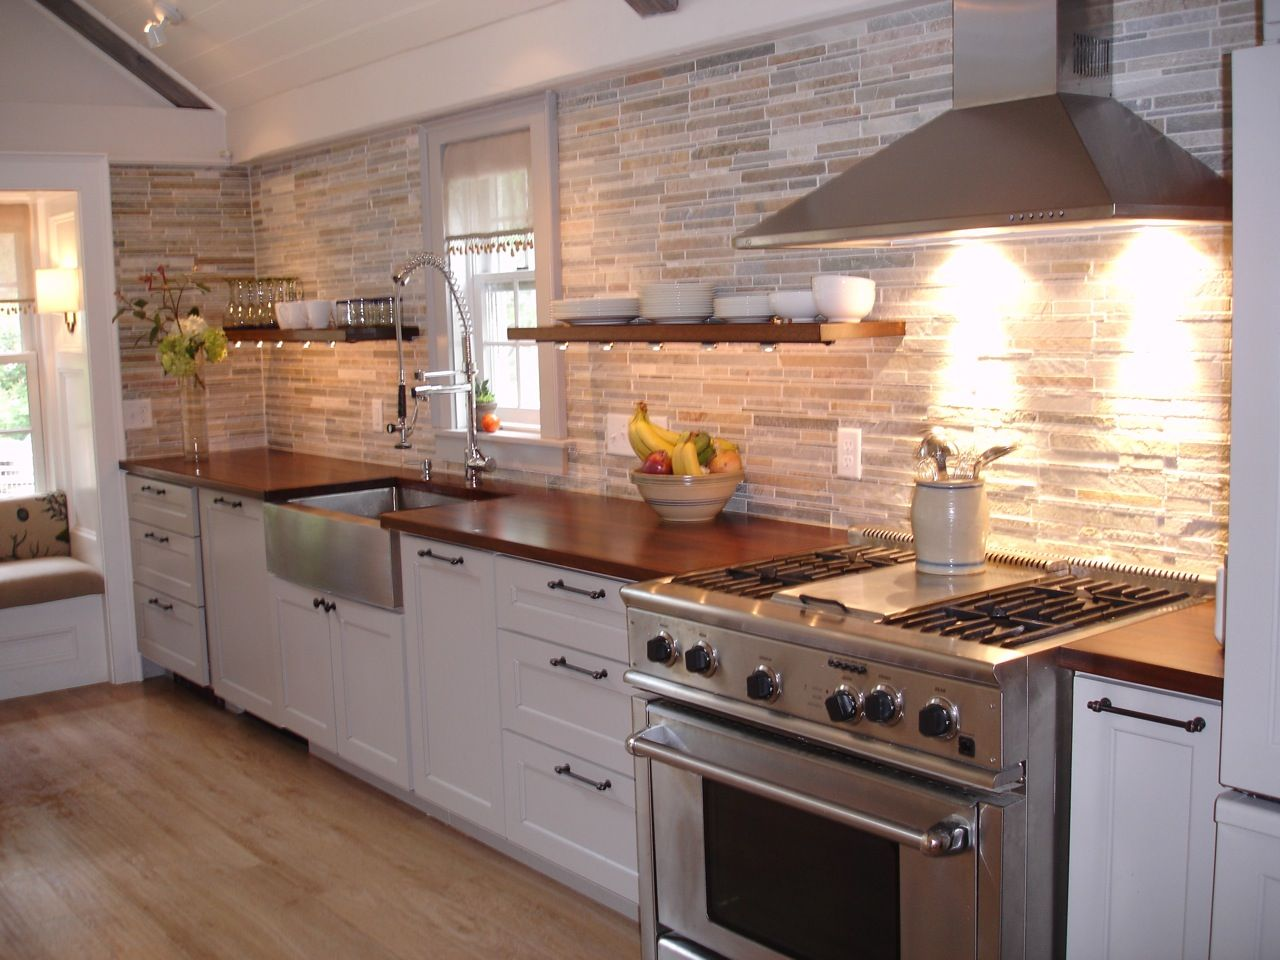 how to choose a wood countertop for your kitchen wood countertops kitchen Mahogany wood countertop provides a warm contrast to stainless steel and white shaker kitchen cabinets